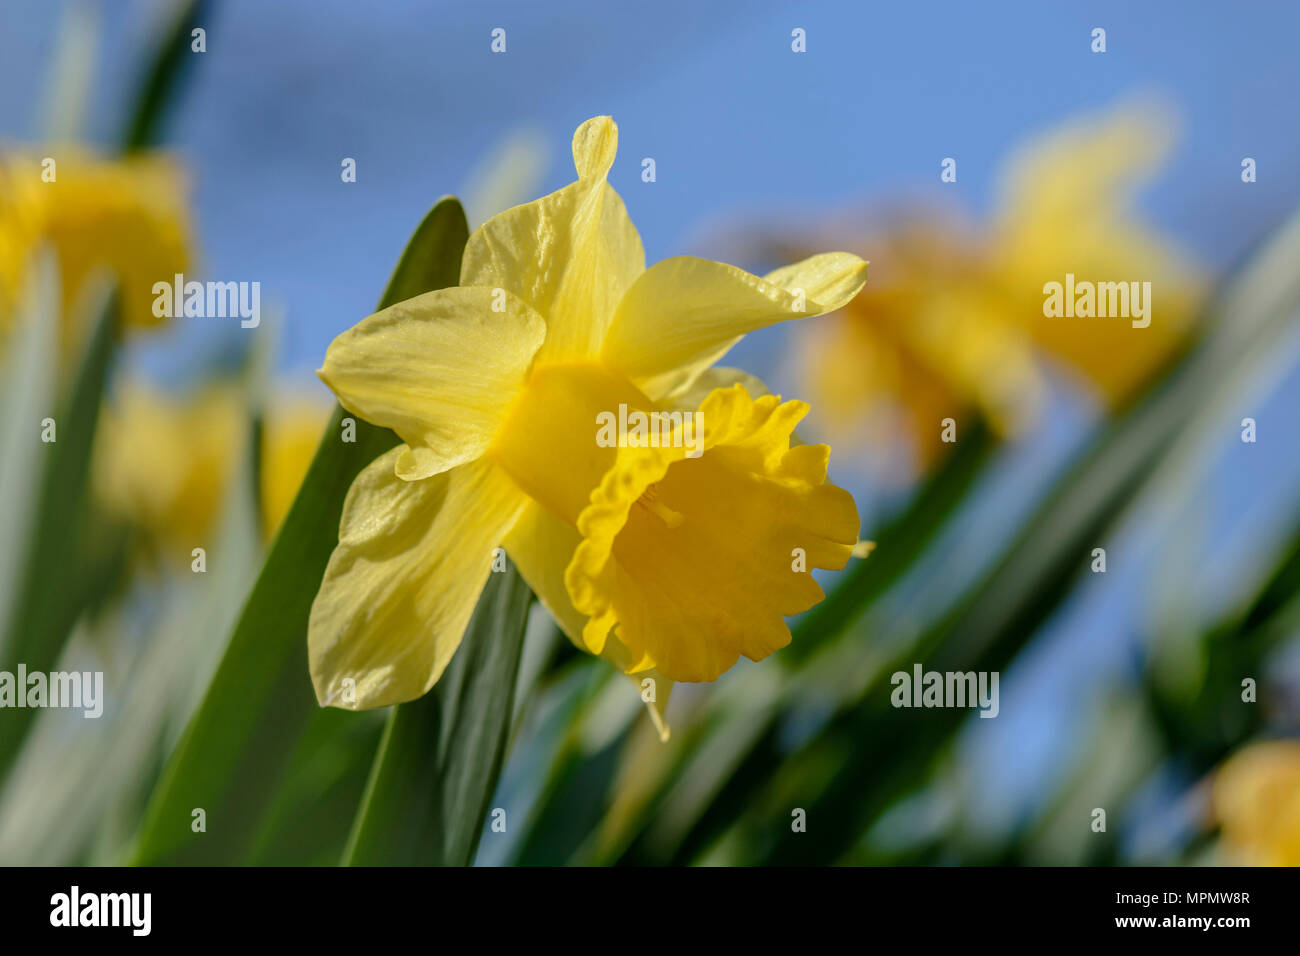 Close up of a Narcissus flower, blurry background Stock Photo